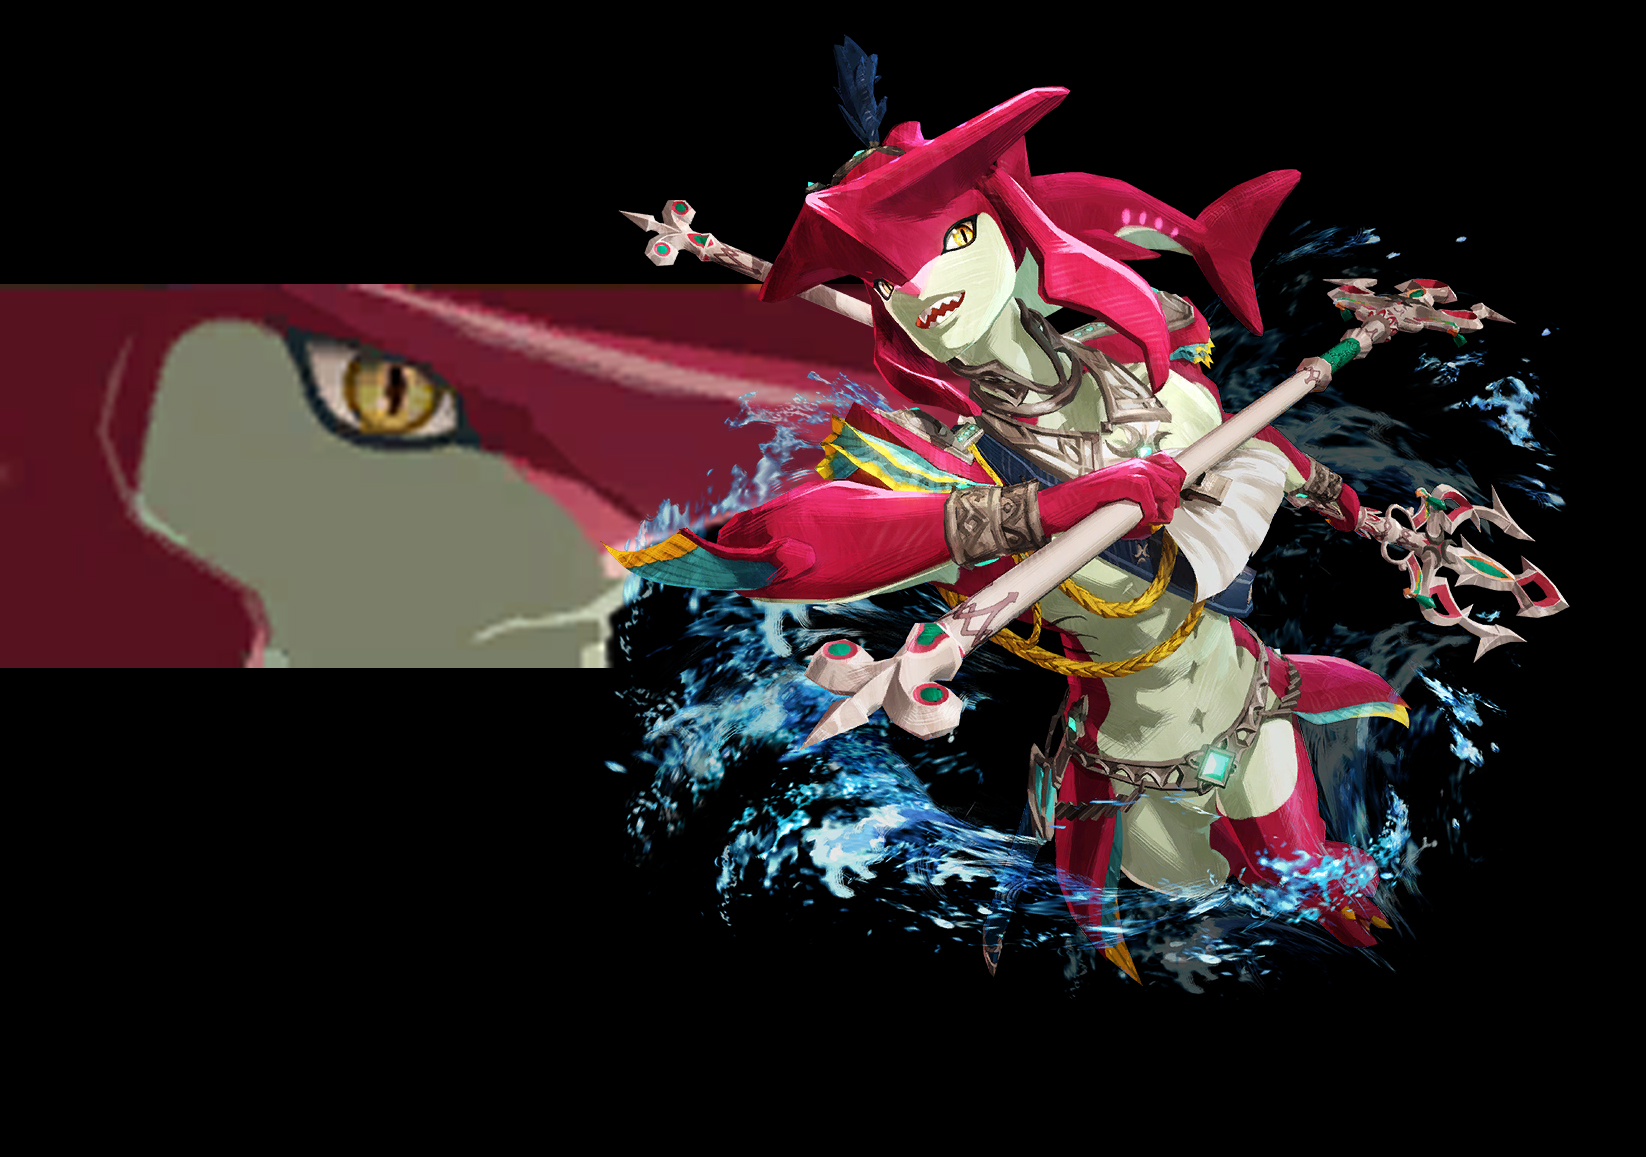 Hyrule Warriors: Age of Calamity — Sidon